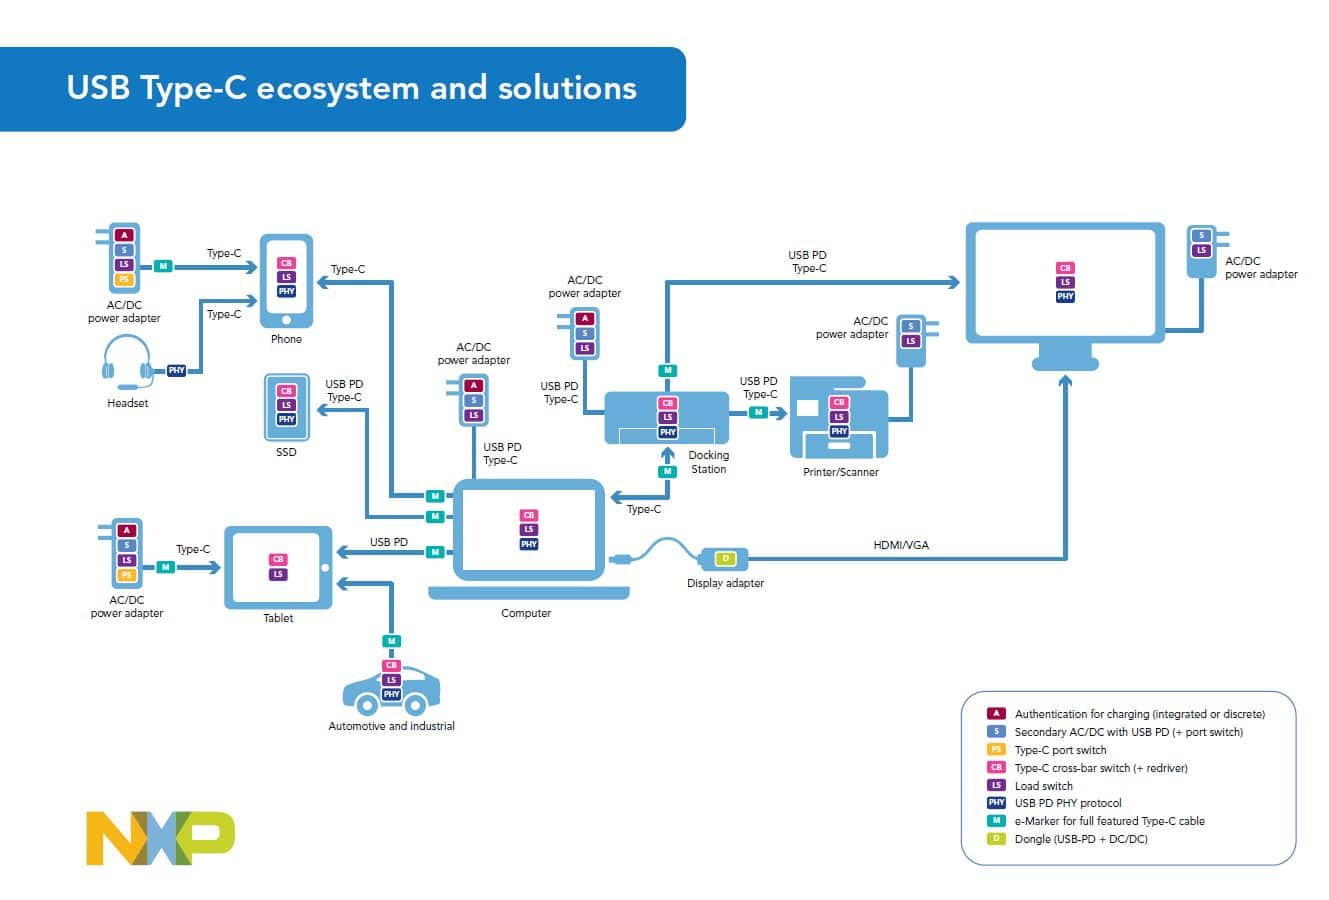 small resolution of image of usb type c ecosystem and solutions